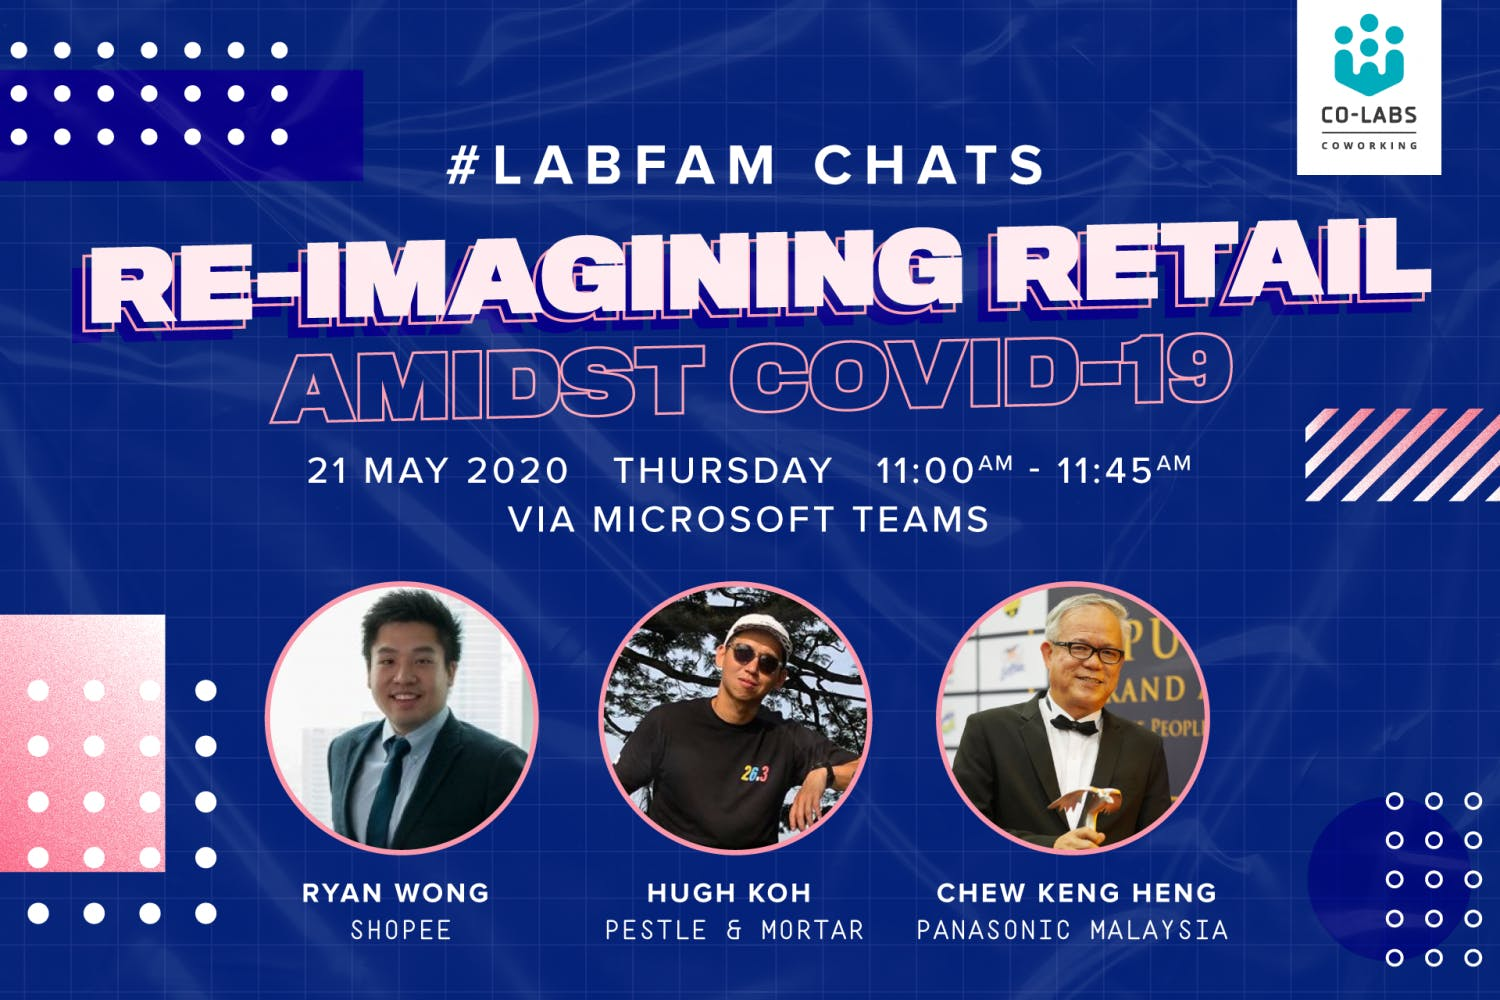 #LabFam Chats: Re-imagining Retail amidst COVID-19